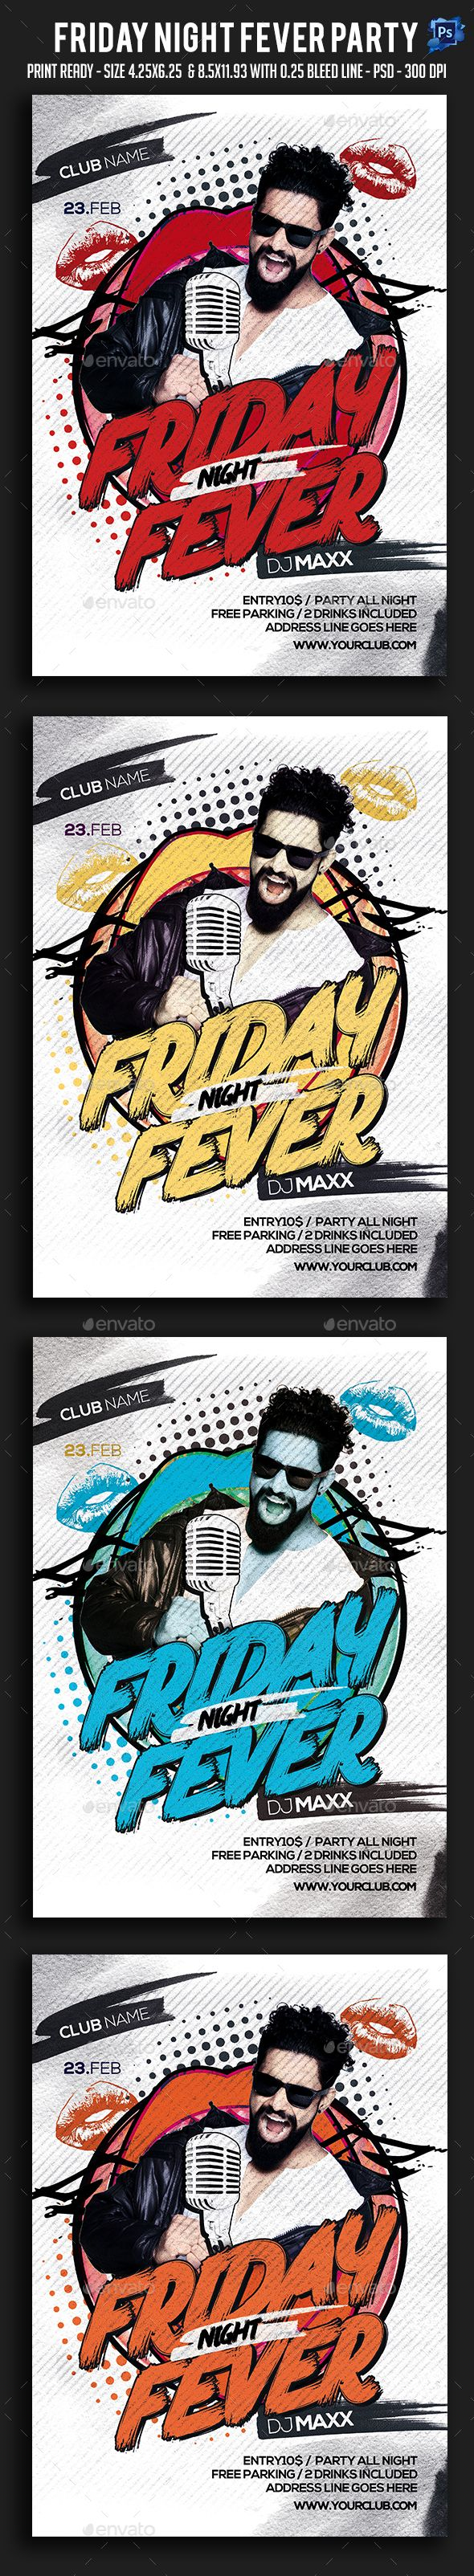 Friday Night Fever Party Flyer — Photoshop PSD #glamour #red • Available here → https://graphicriver.net/item/friday-night-fever-party-flyer/19228594?ref=pxcr